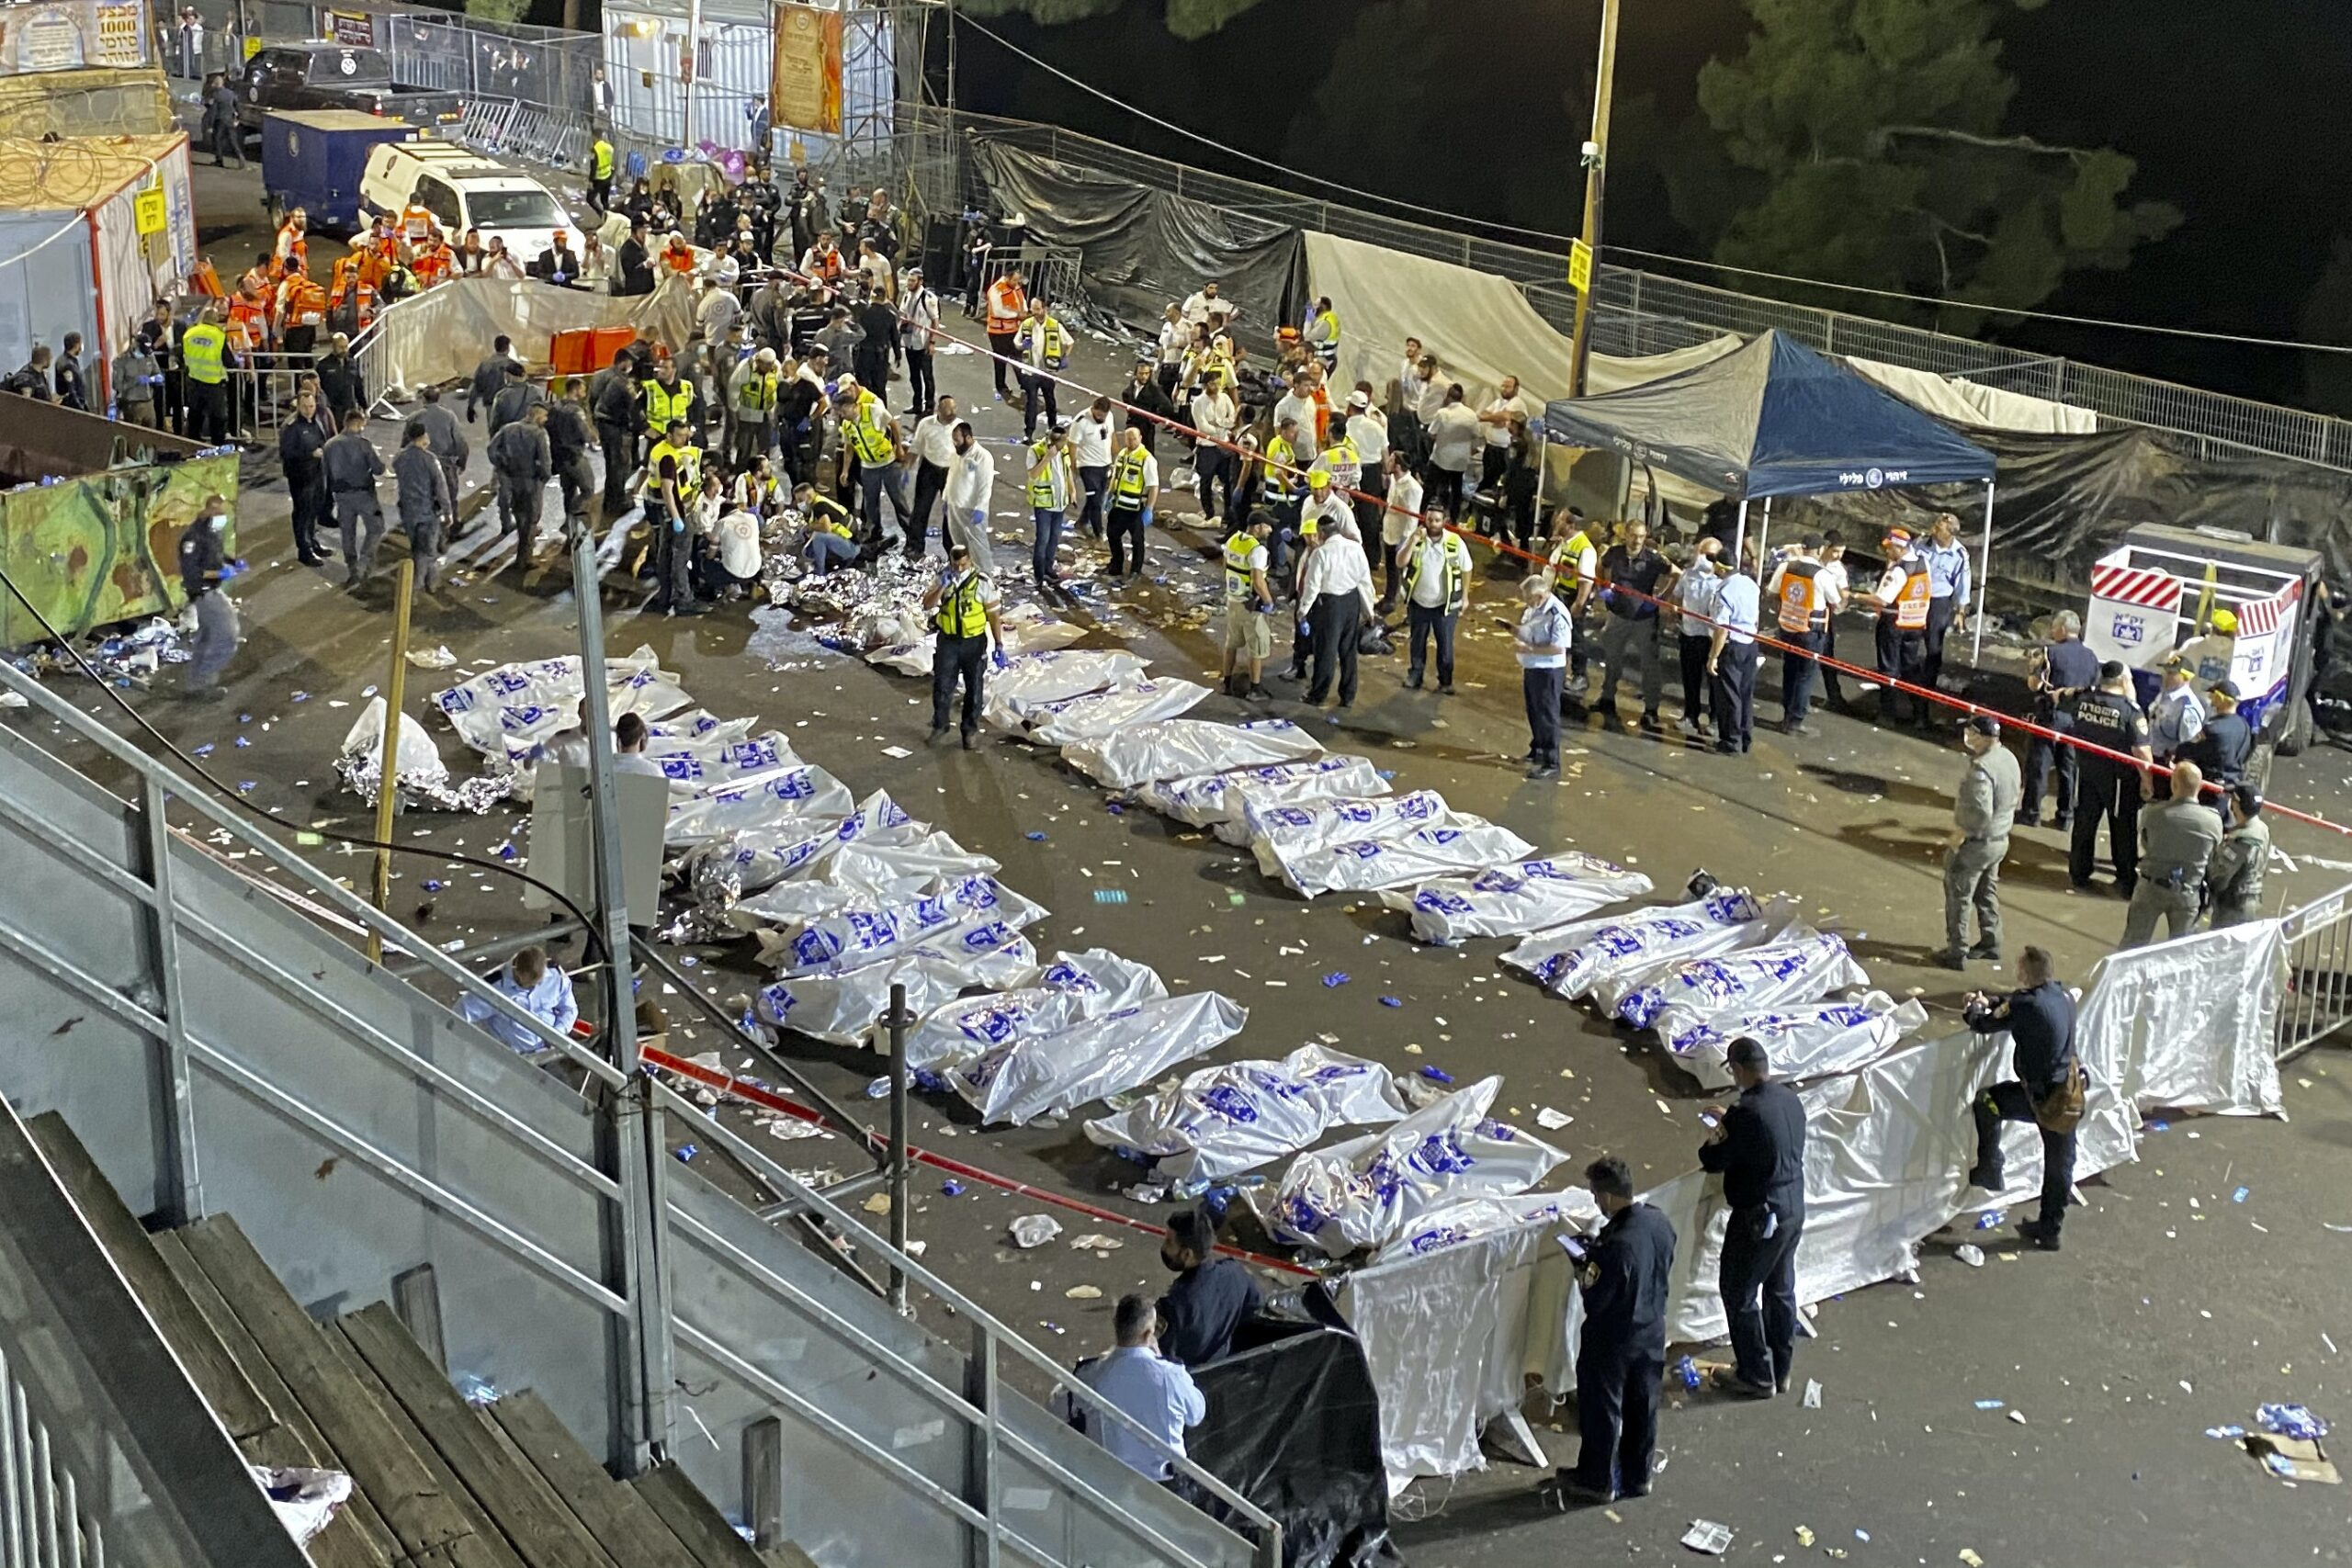 Israel stampede: National day of mourning after at least 45 killed at religious bonfire festival